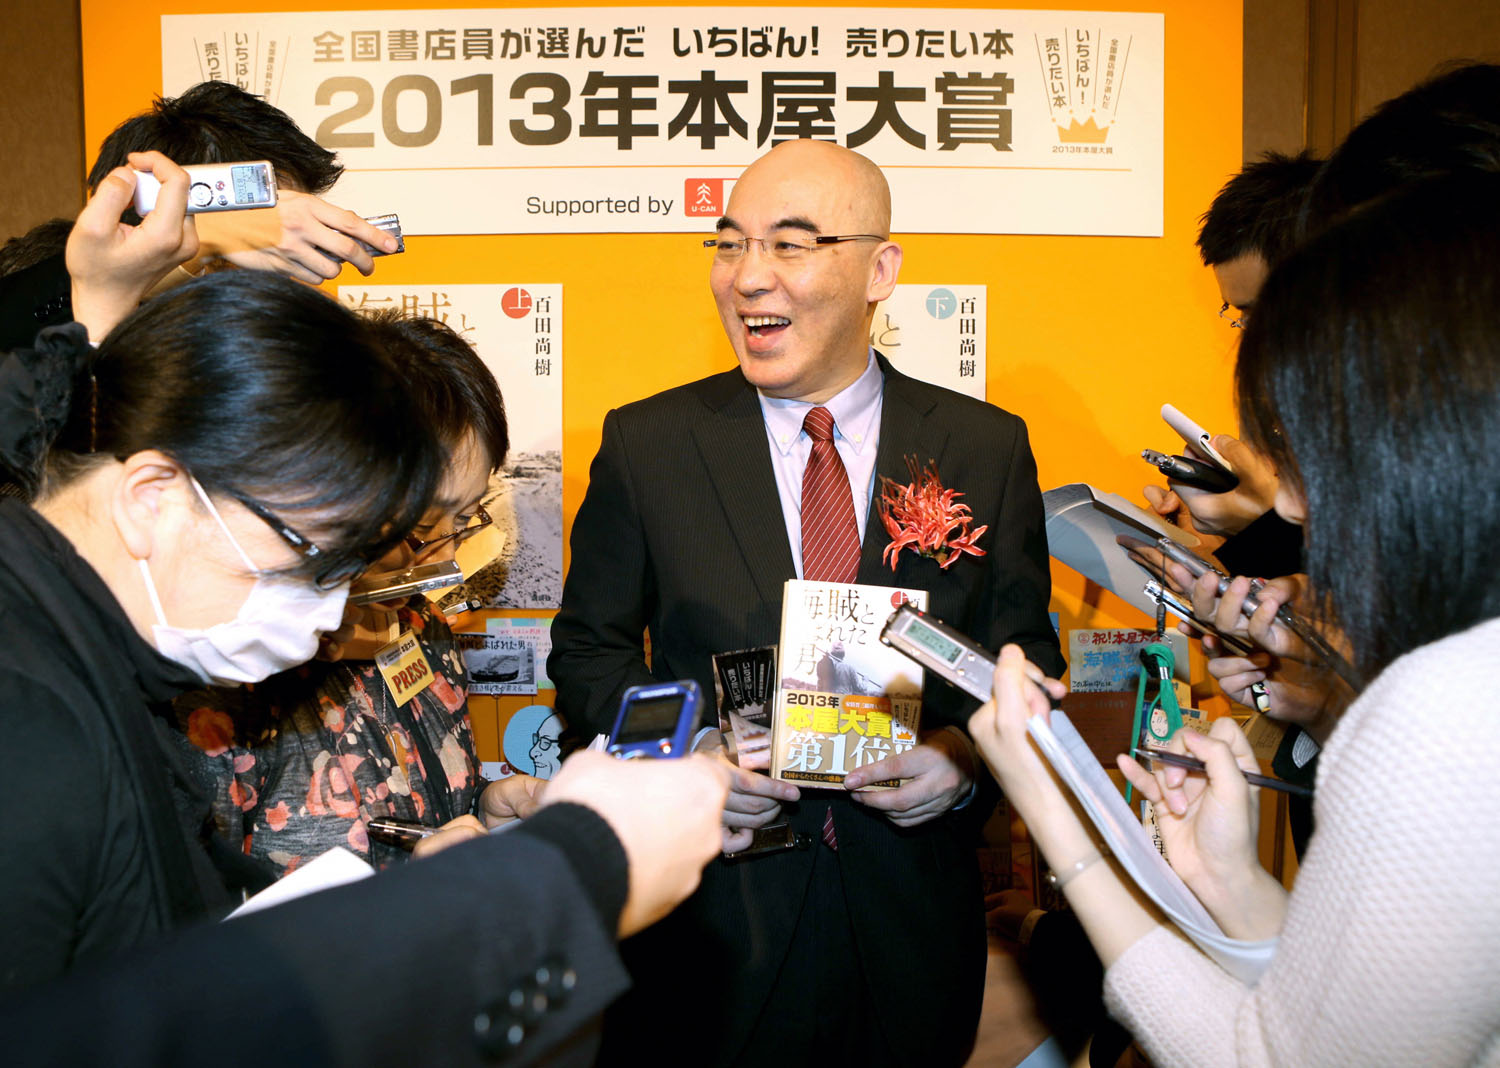 Writer and NHK board member Naoki Hyakuta, seen here last year at the launch of one of his books, believes the Japanese did not commit war crimes in World War II and that the U.S. fabricated them